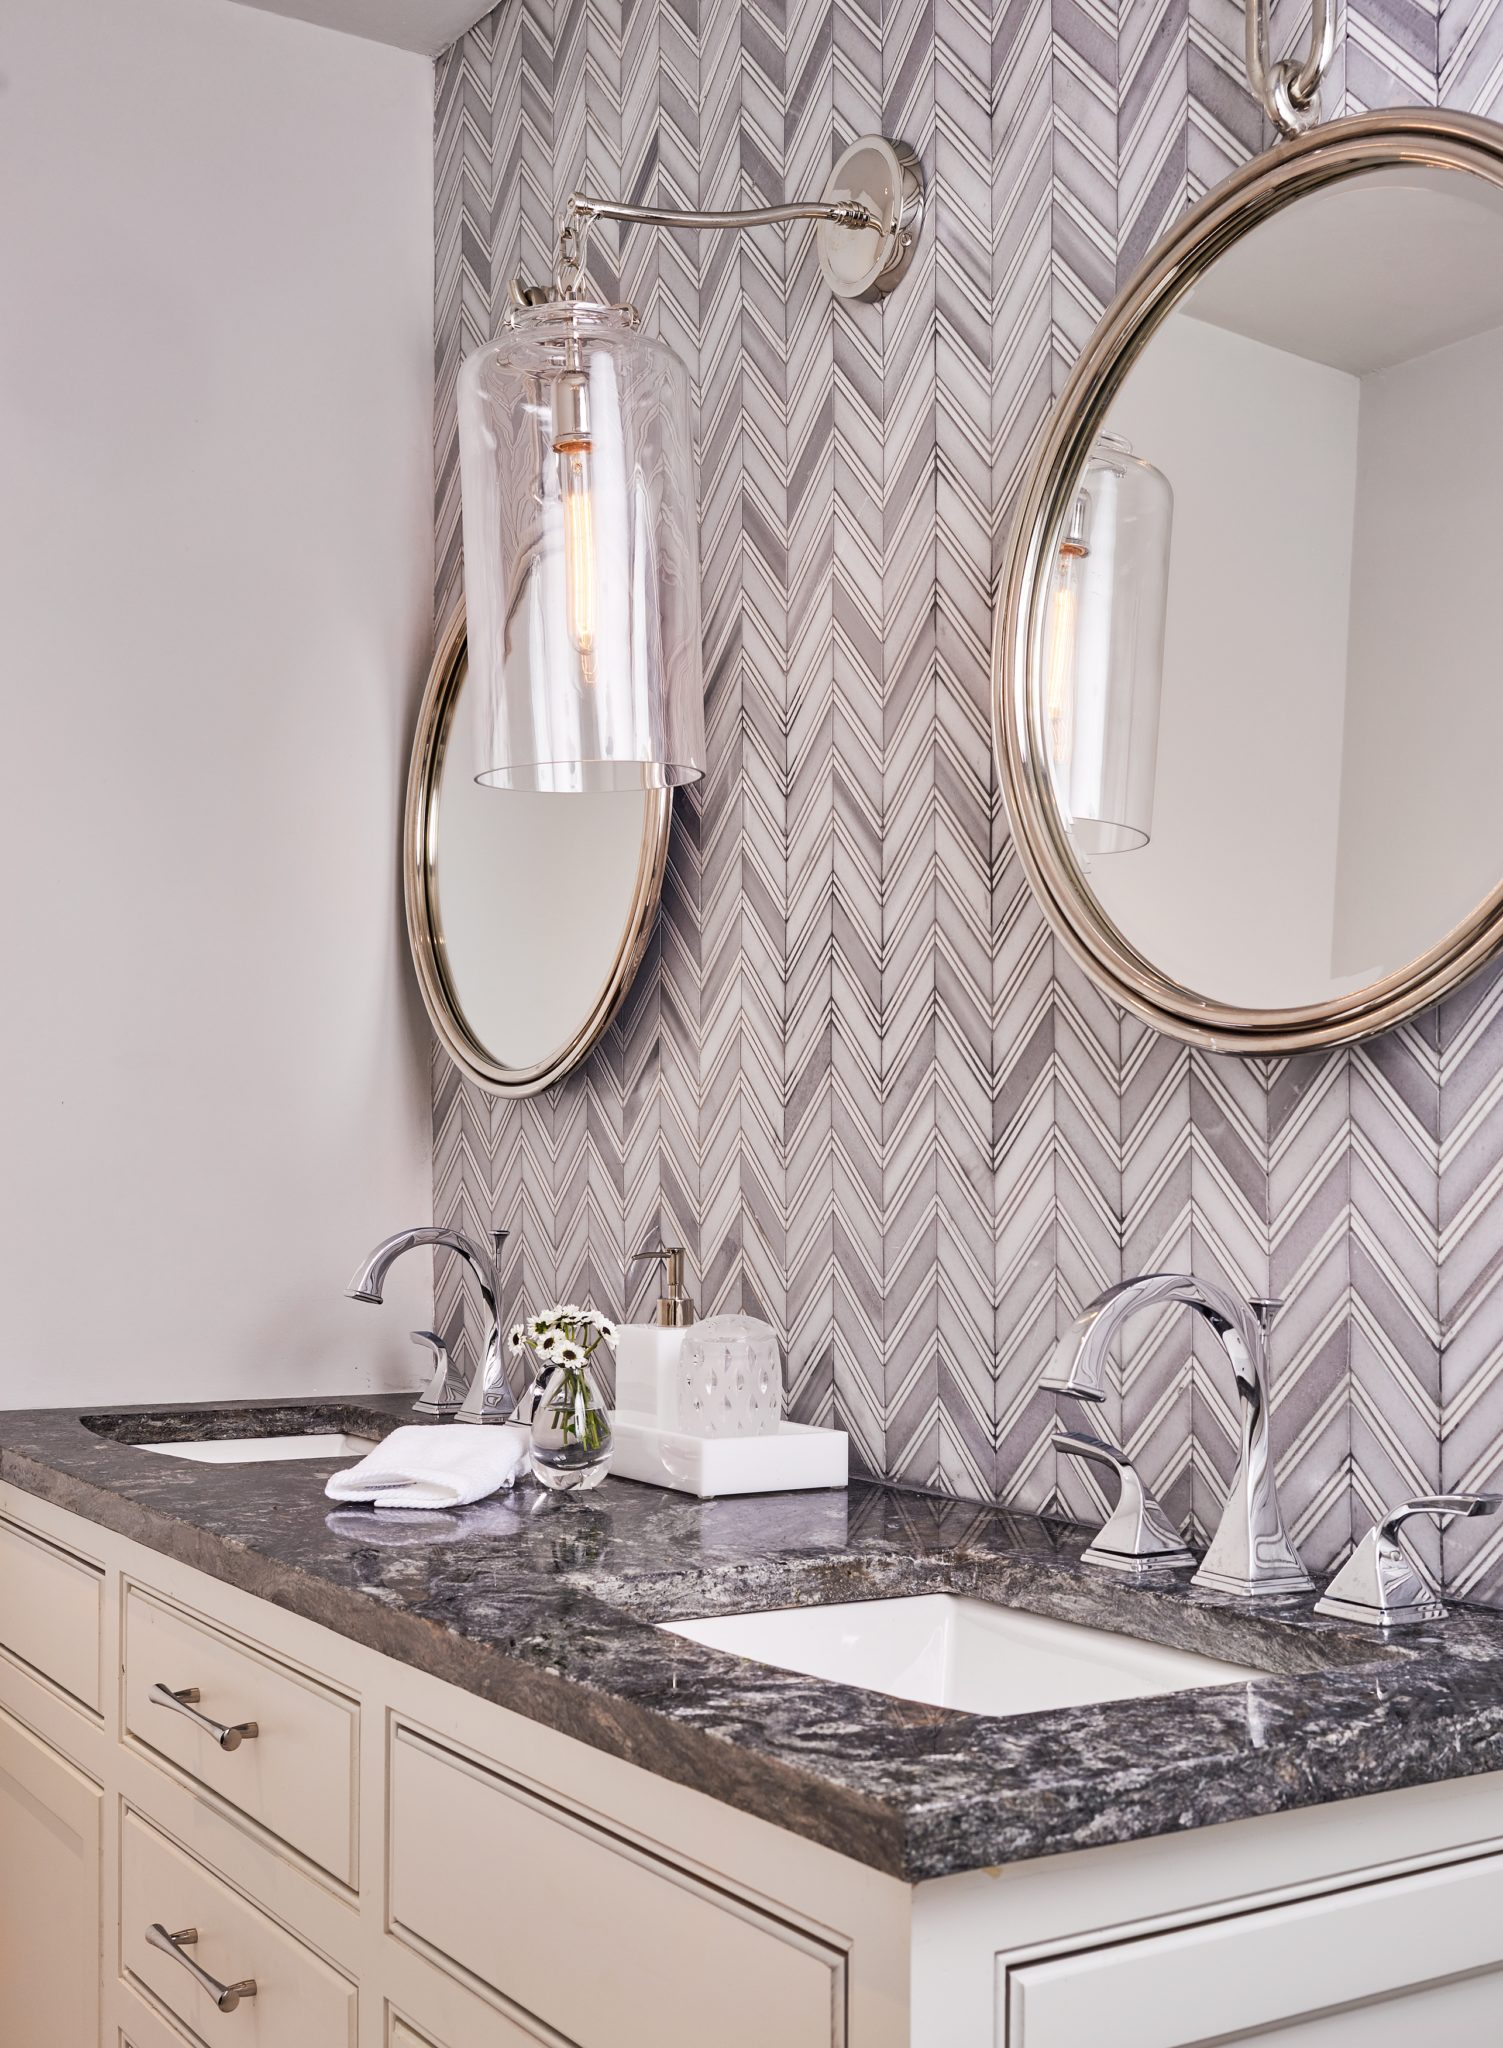 Marble chevron and polished nickel provide a sparkling, clean look to the space. by Wesley-Wayne Interiors